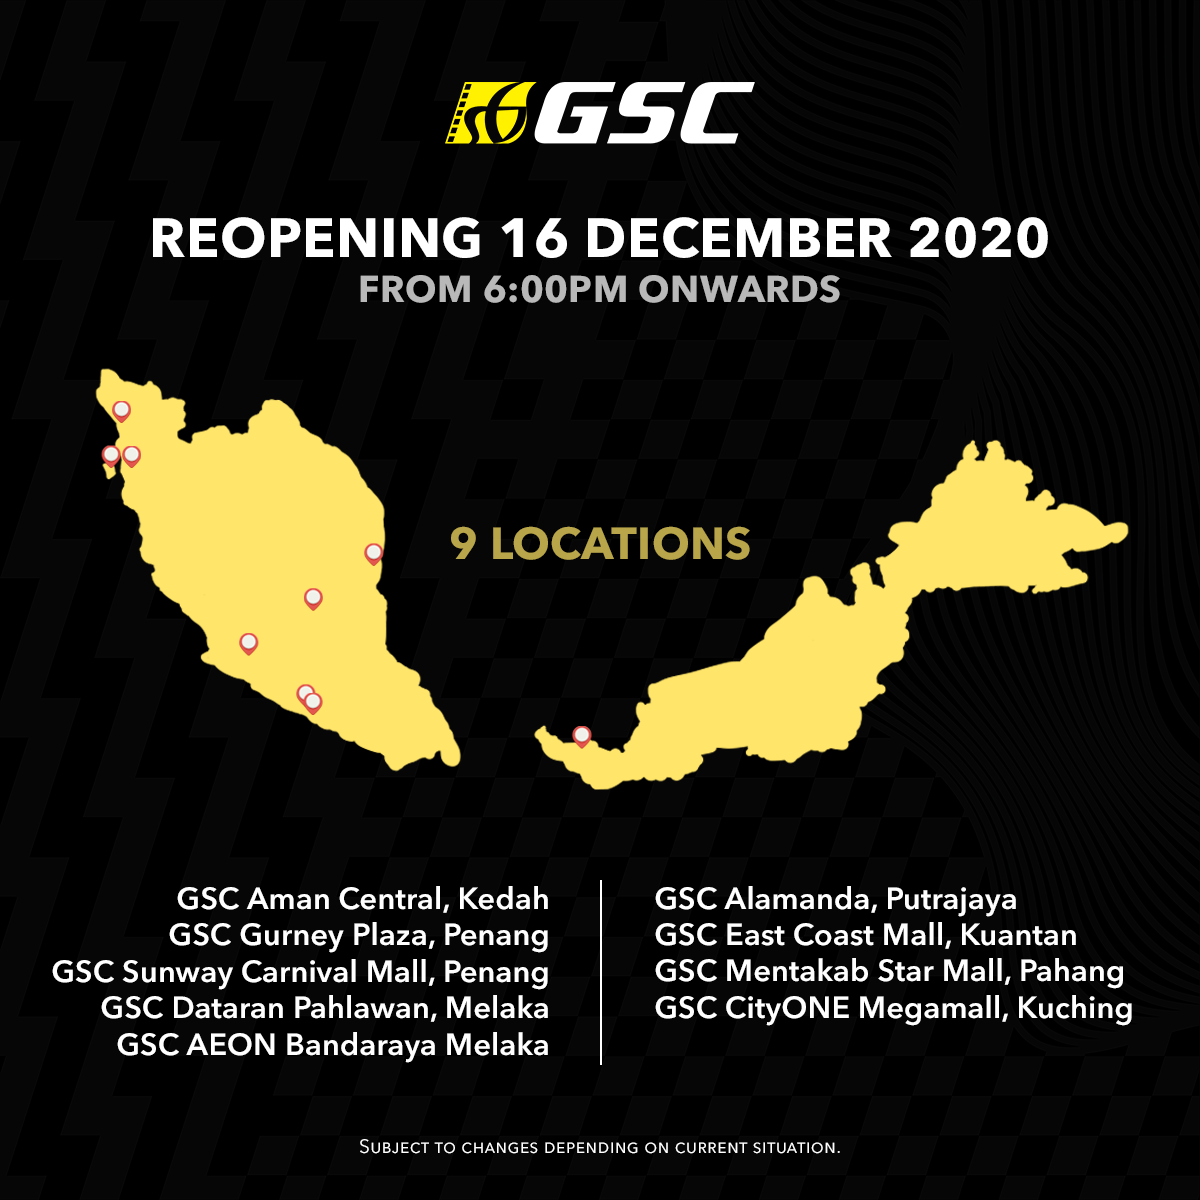 gsc cinemas reopening locations poster